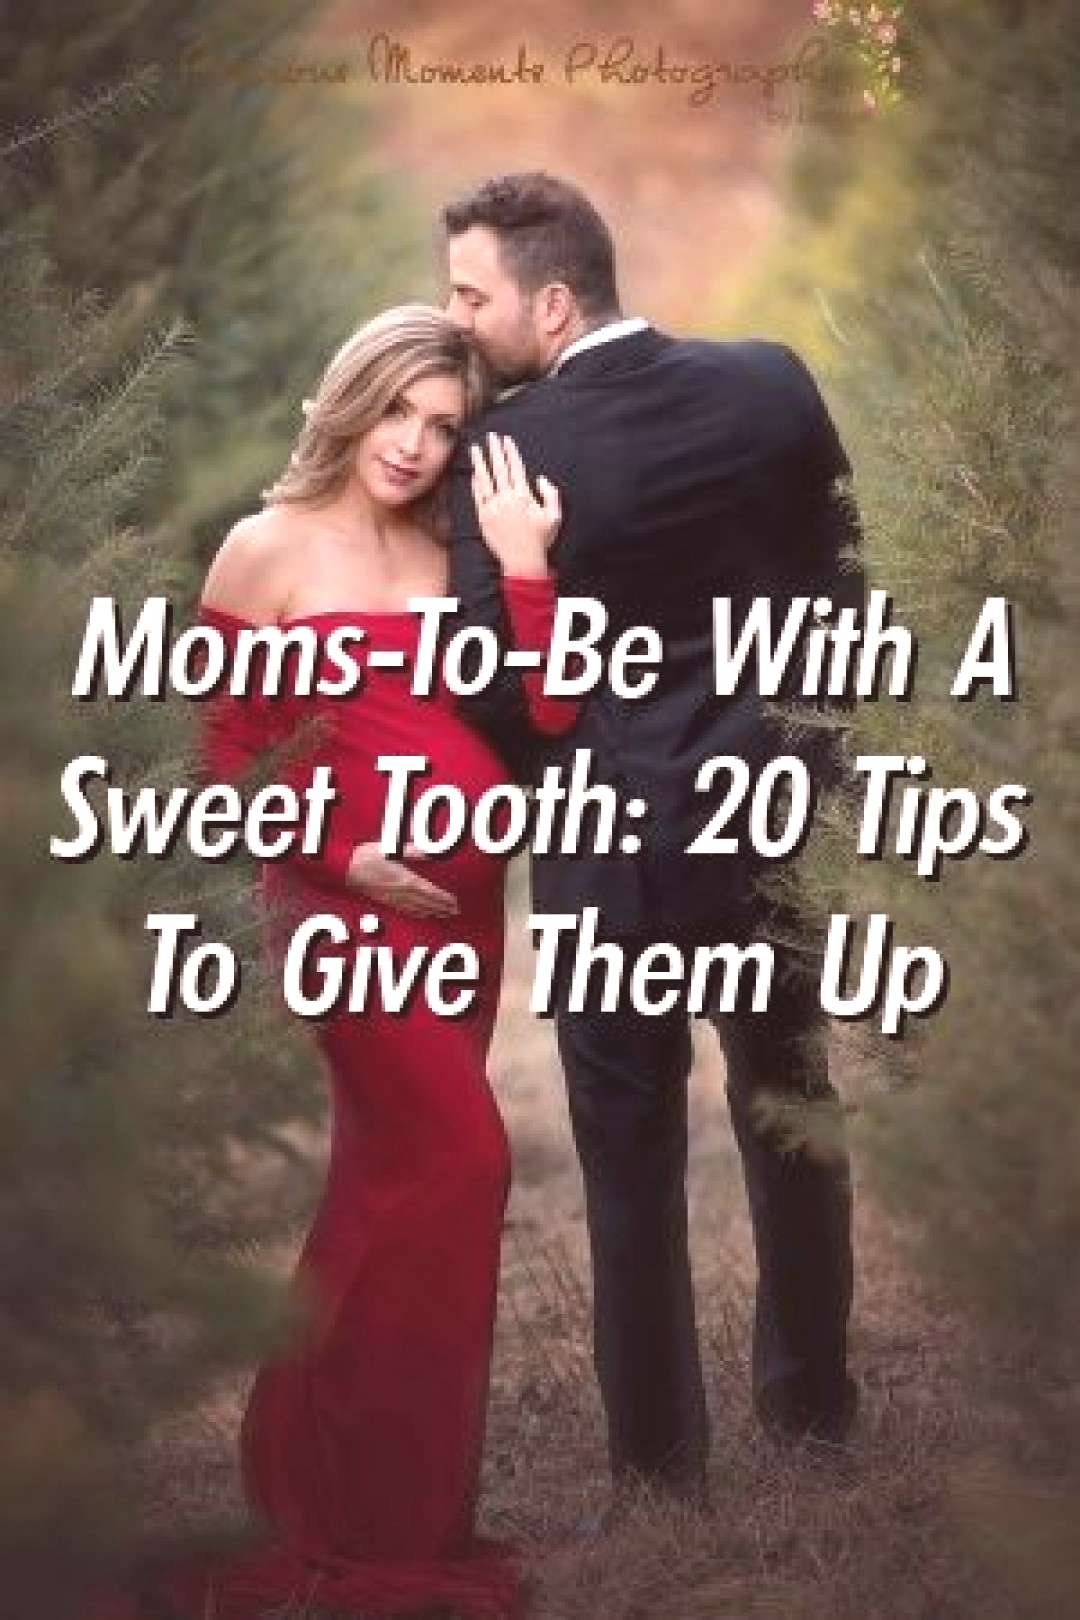 Joanne Bell Moms-To-Be With A Sweet Tooth 20 Tips To Give Them Up Joanne Bell Tells About Moms-To-